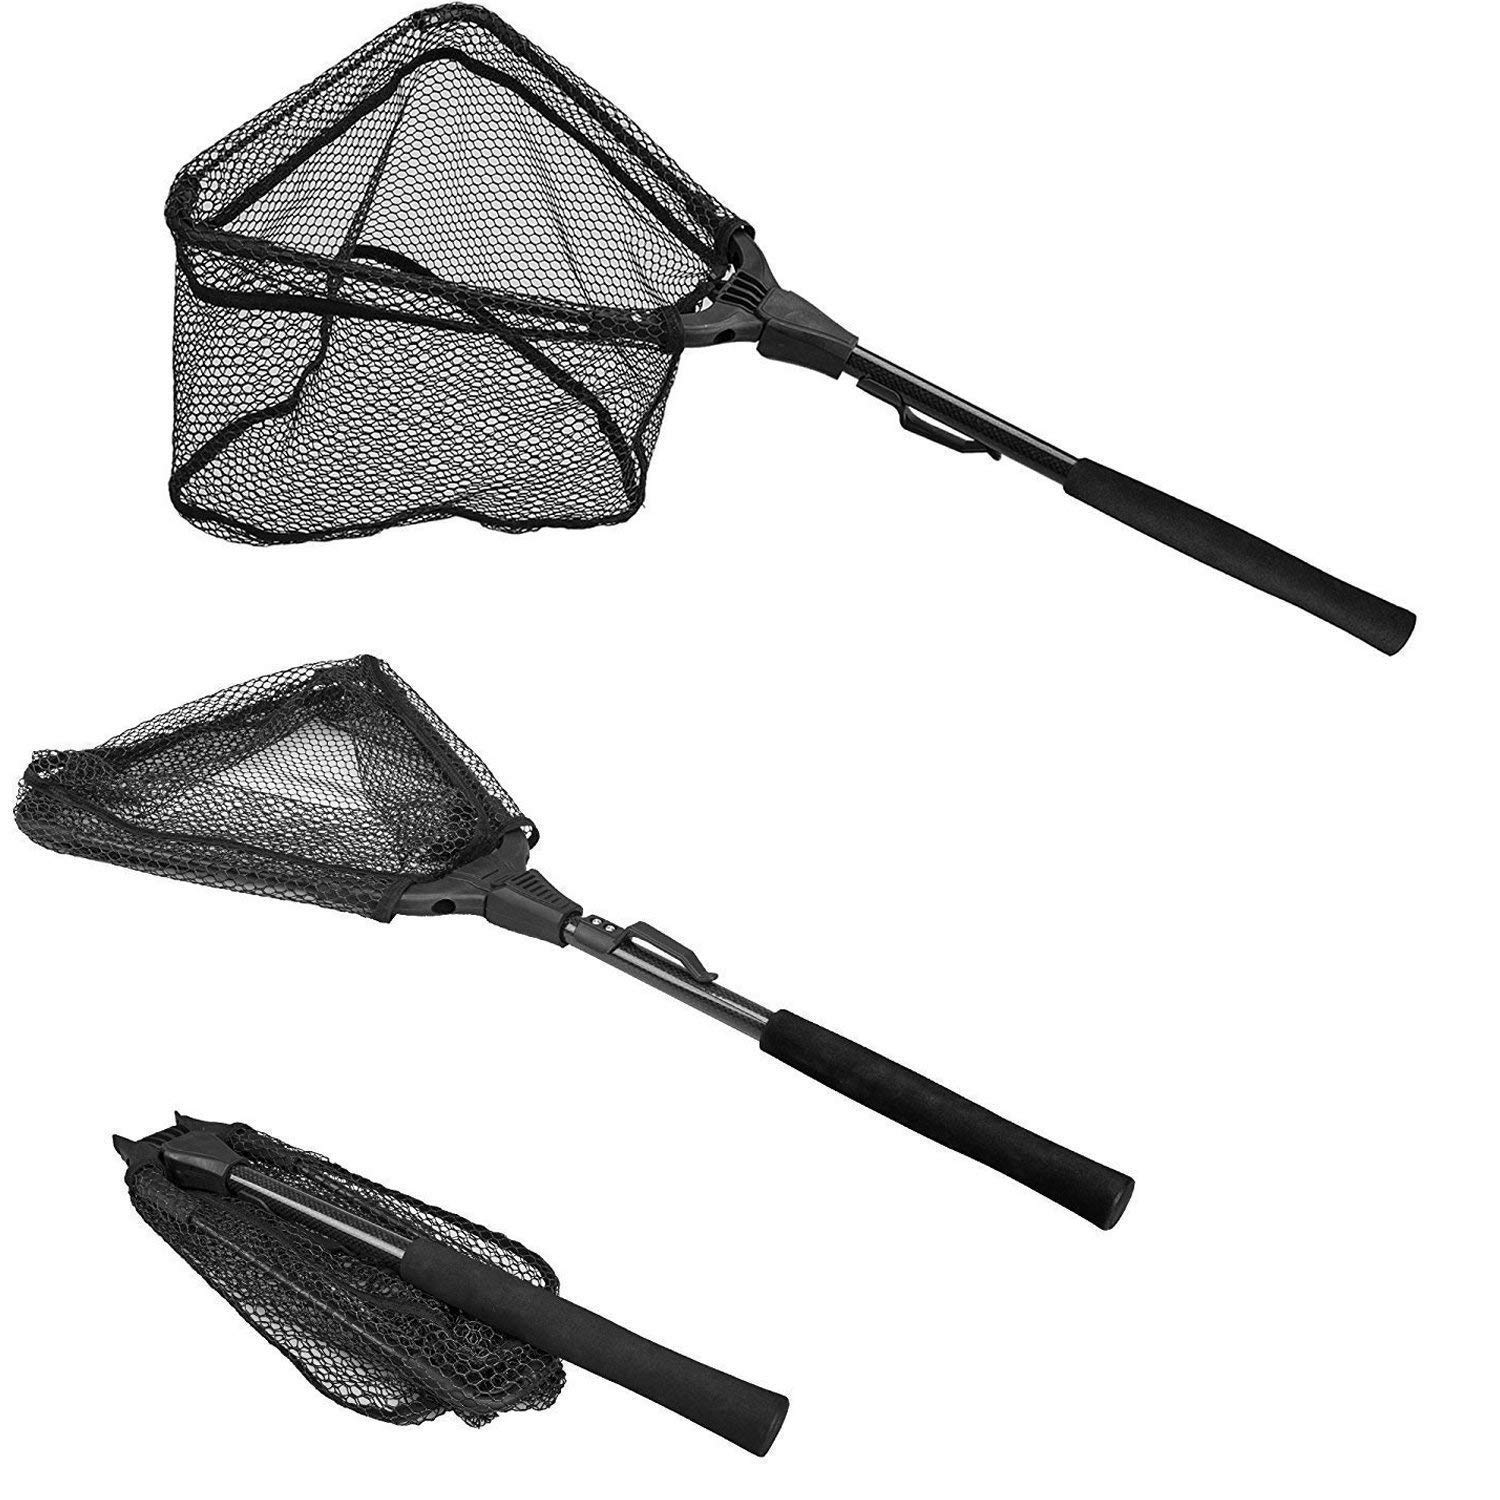 PLUSINNO Fishing Net Fish Landing Net, Foldable Collapsible Telescopic Pole Handle, Durable Nylon Material Mesh, Safe Fish Catching or Releasing (12''/31cm Hoop Size (Fixed Pole)) by PLUSINNO